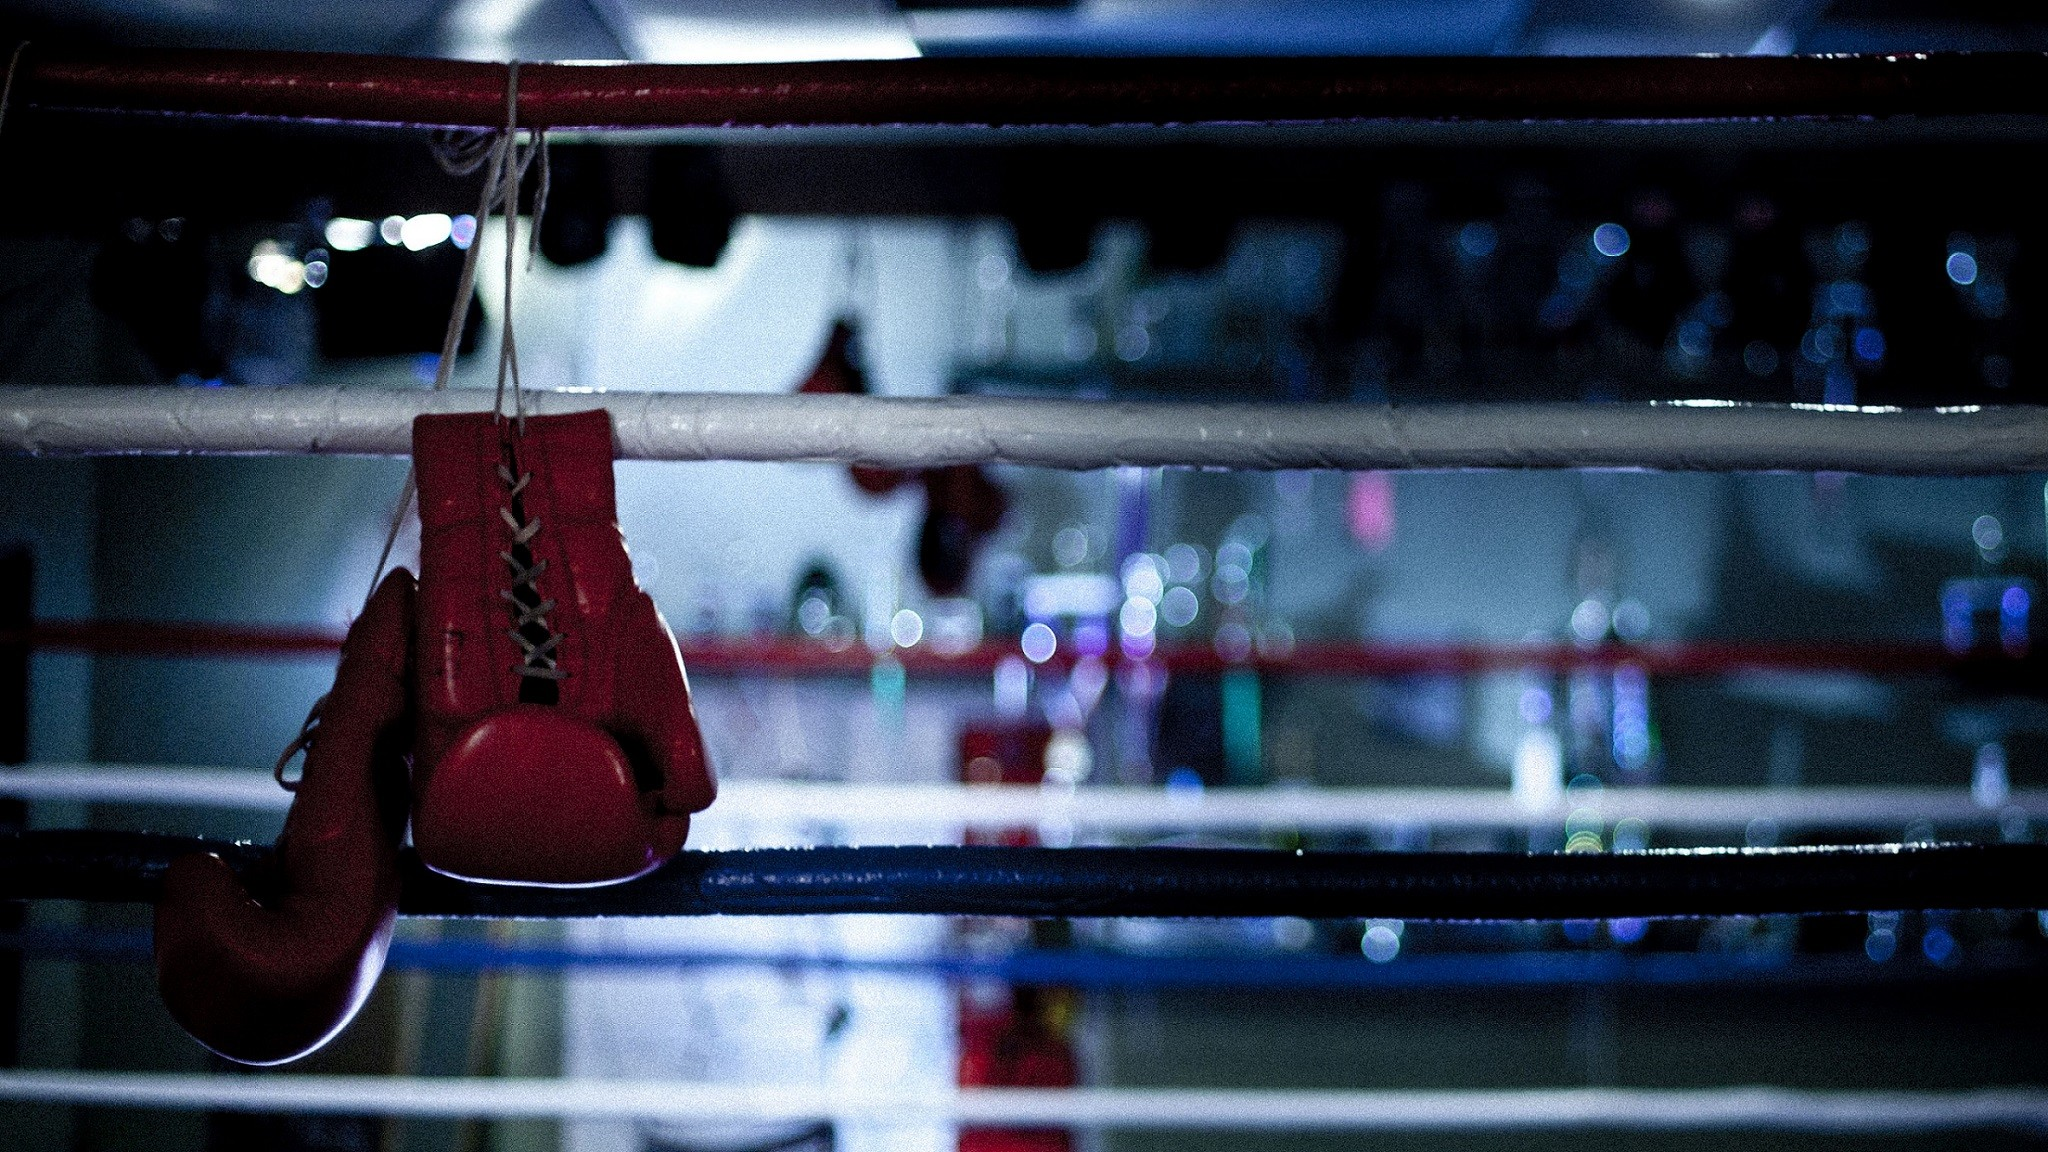 Res: 2048x1152, Save Boxing Gloves Wallpaper in HD Resolutions